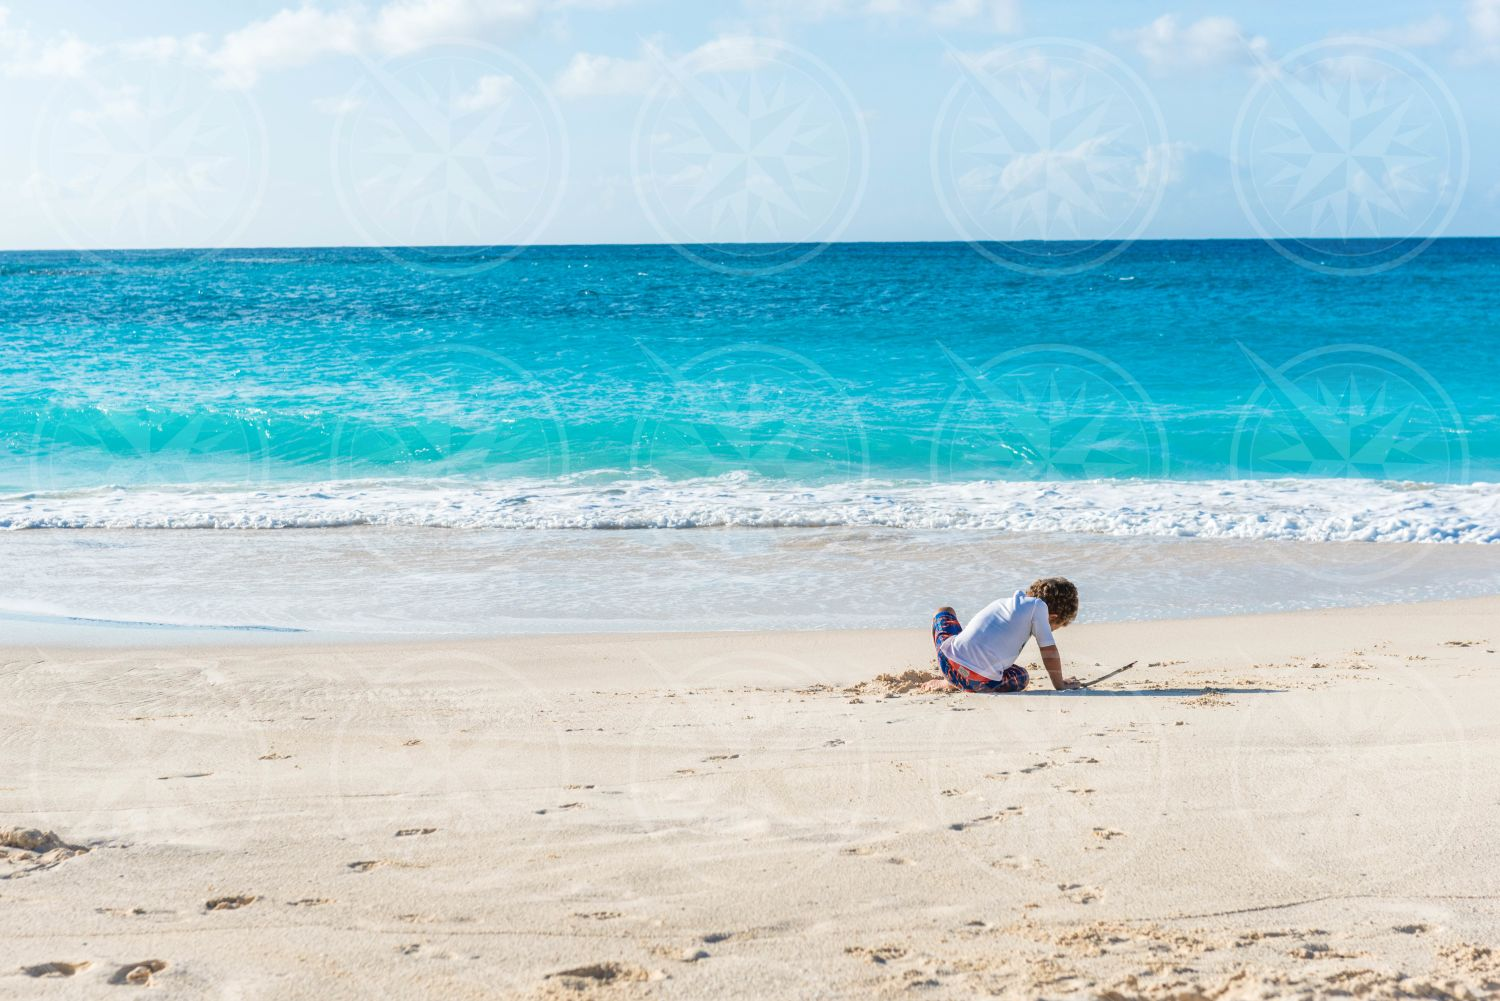 Young boy playing on white sand beach